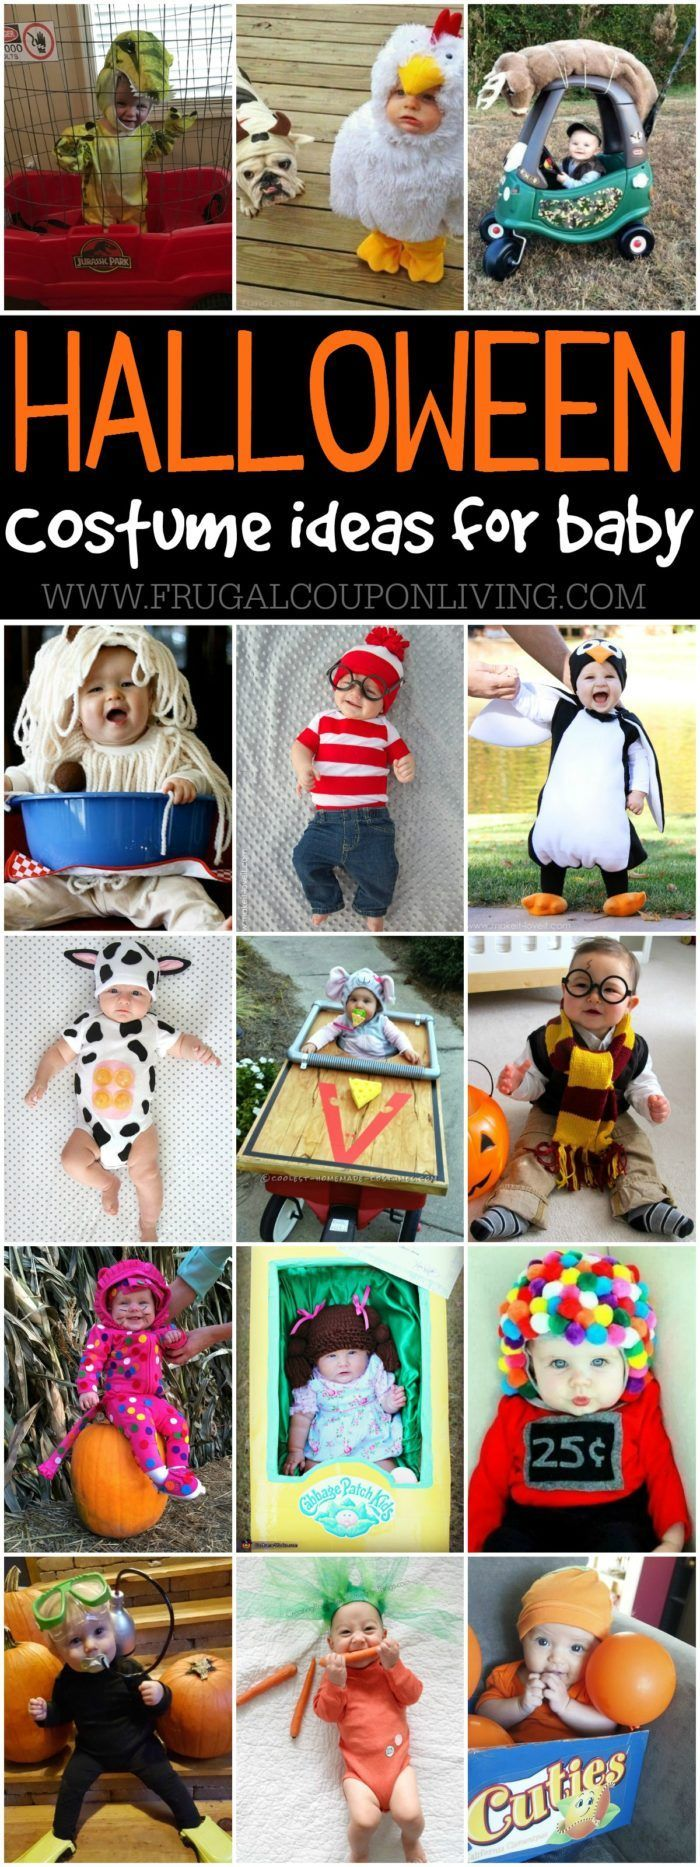 Creative Baby Halloween Costume Ideas and where to buy them. A fun mix of Homemade Halloween costume ideas and costumes found in the store. Details on Frugal Coupon Living.